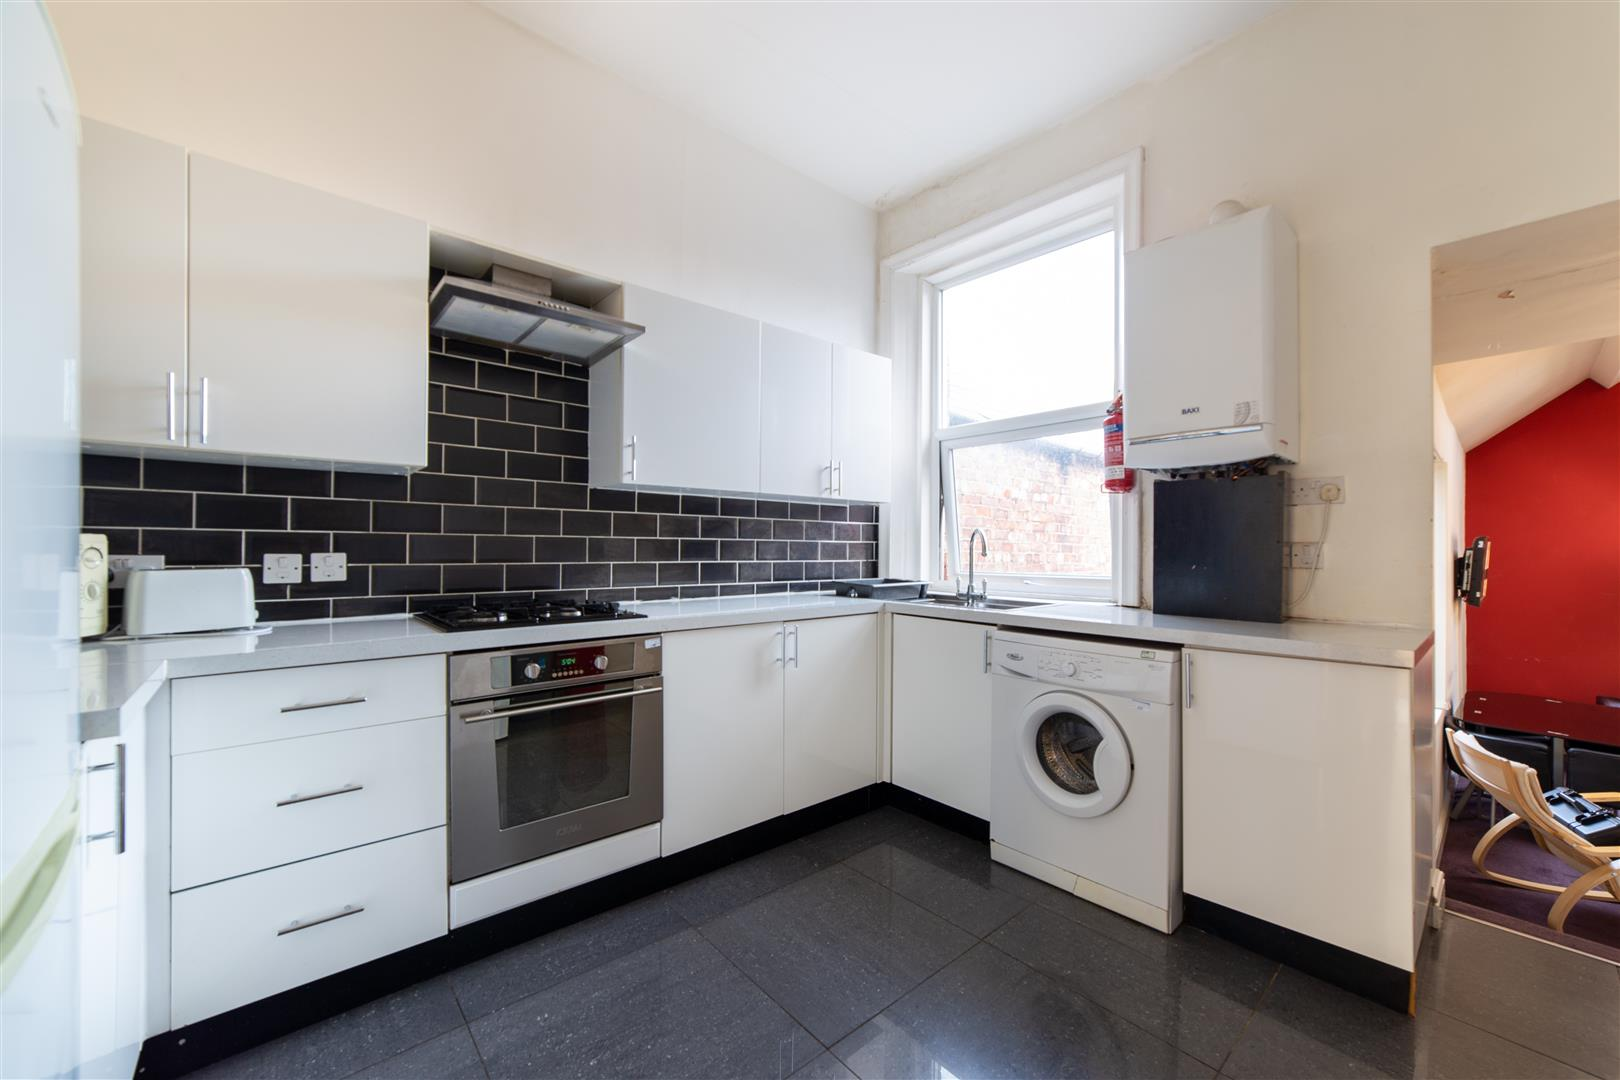 5 bed maisonette to rent in Newcastle Upon Tyne, NE6 5HL  - Property Image 10